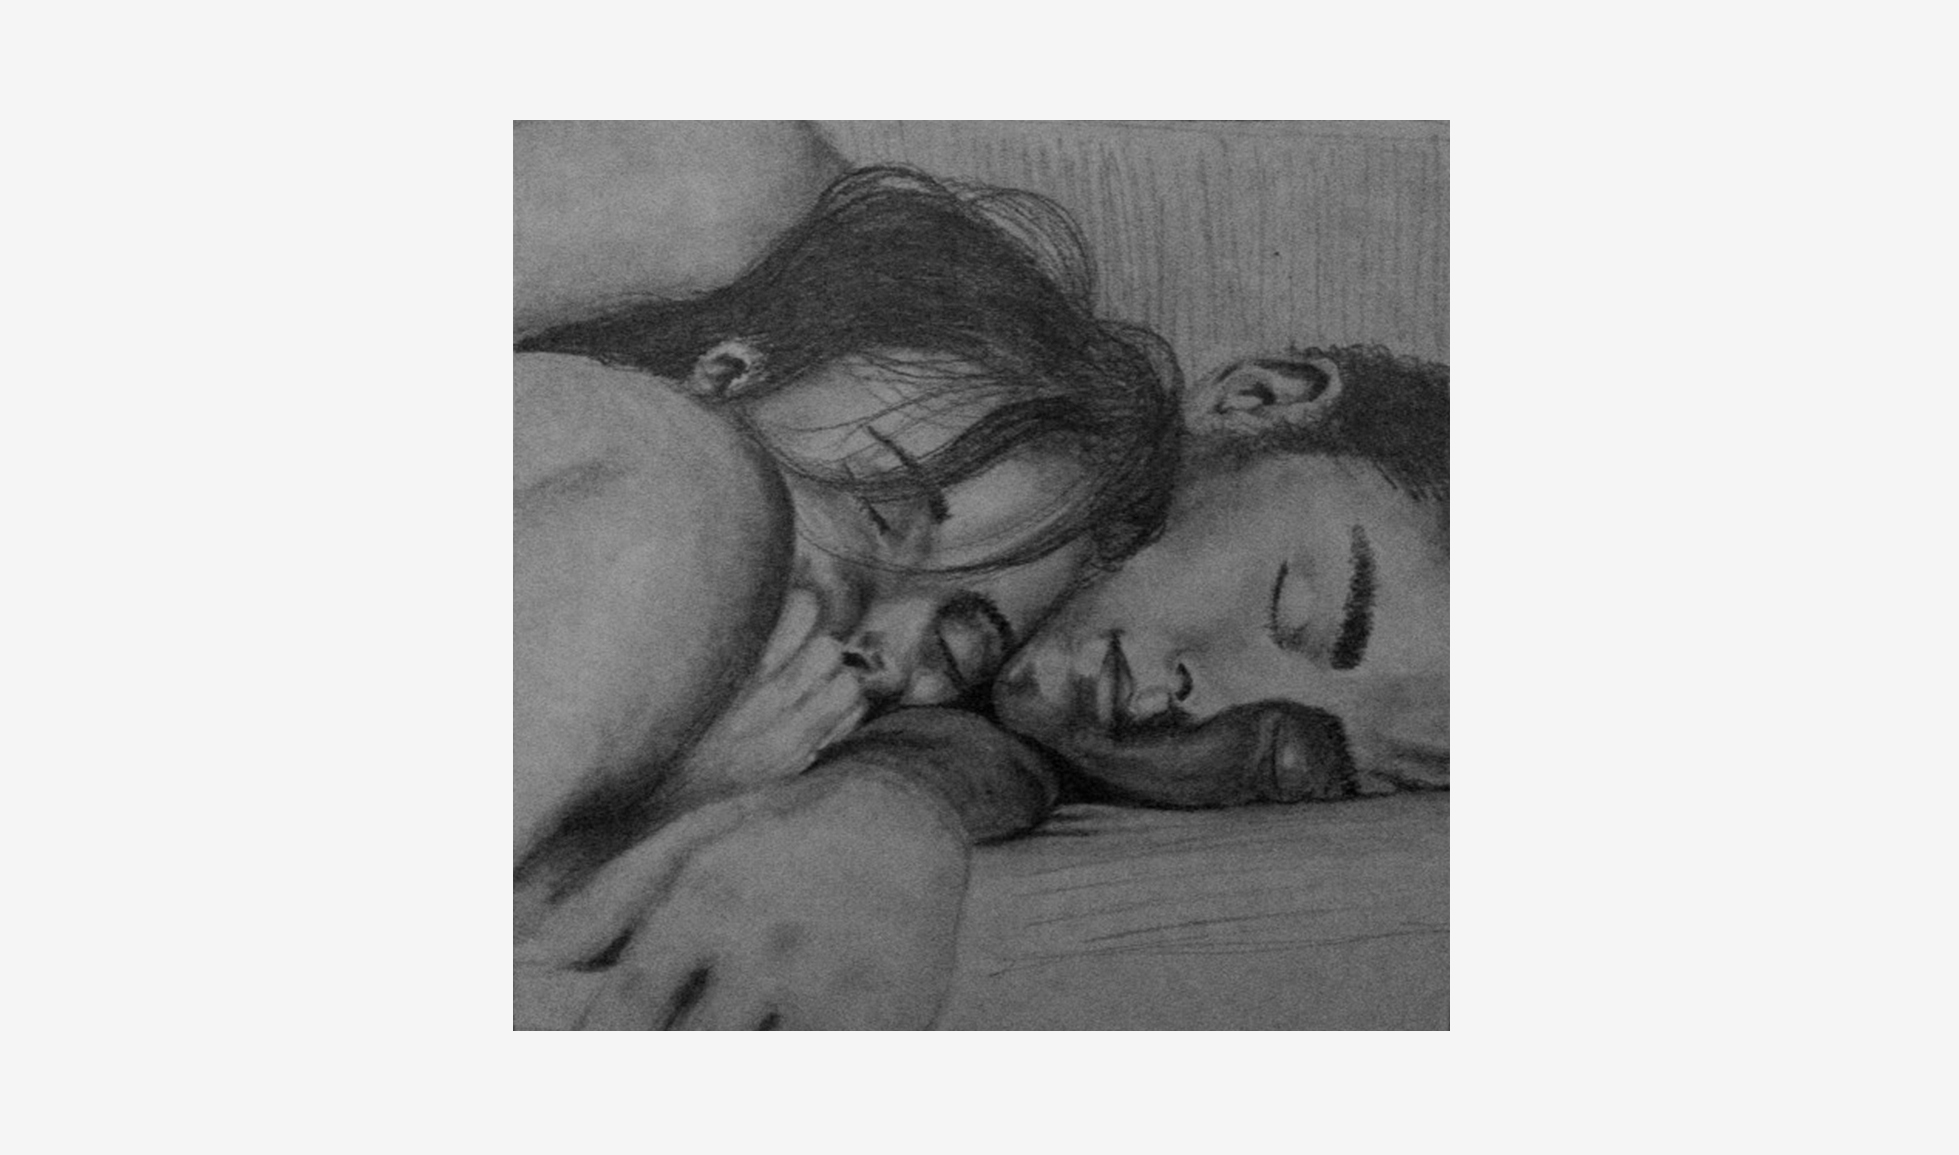 ART_Charcoal_Cuddle